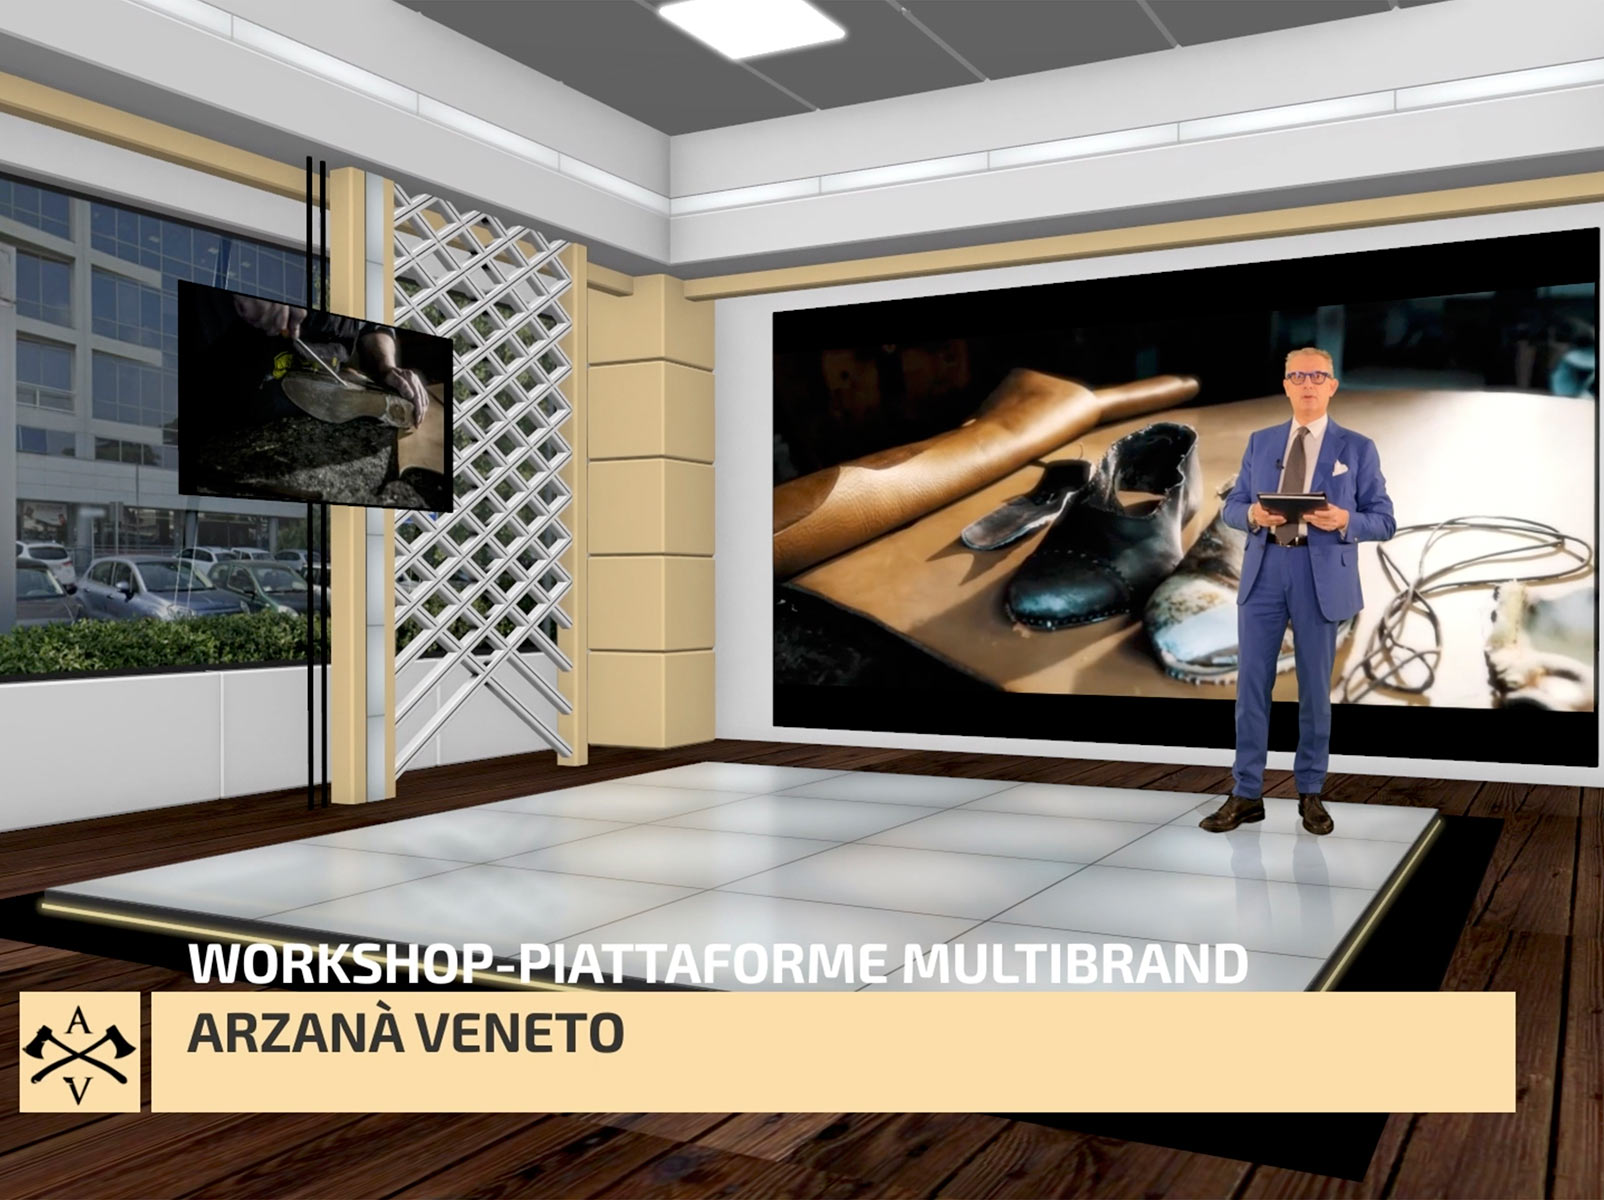 h2digital - workshop italia arzana